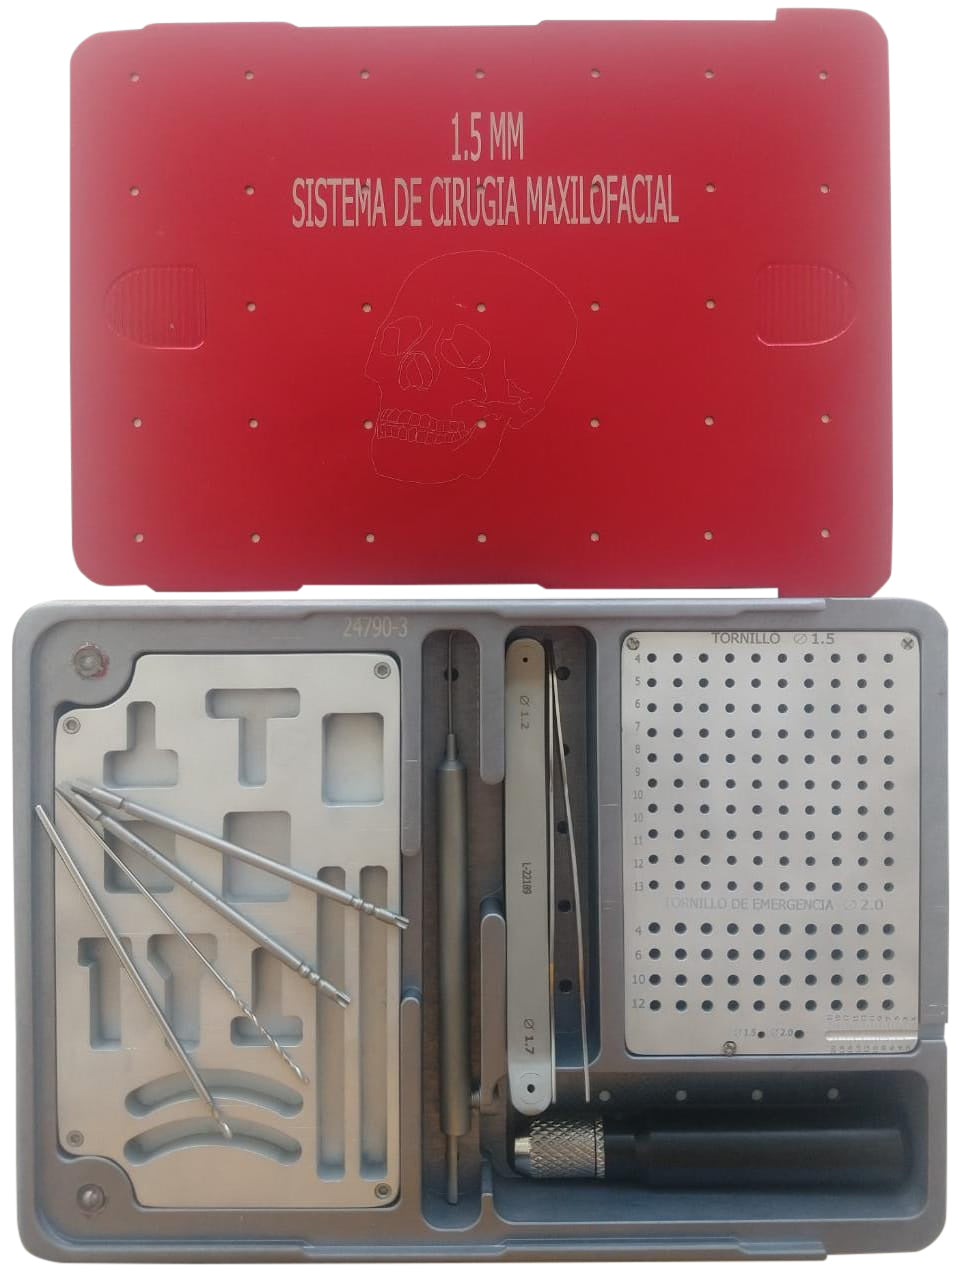 KIT INSTRUMENTAL MAXILOFACIAL 1.5MM